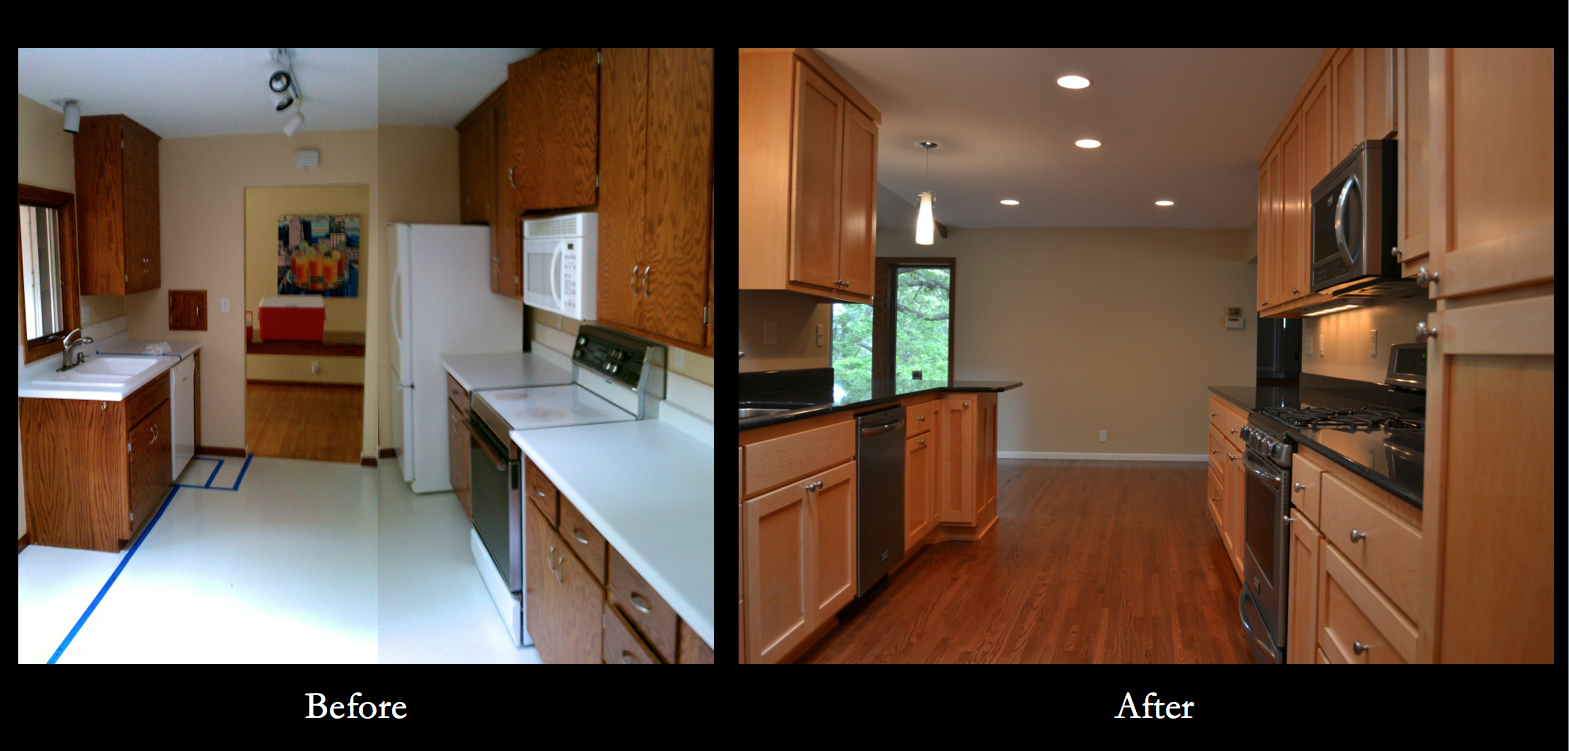 Images Of Remodeled Kitchens Before And After Small Kitchen Remodels Before After  Kitchen Remodel Before And